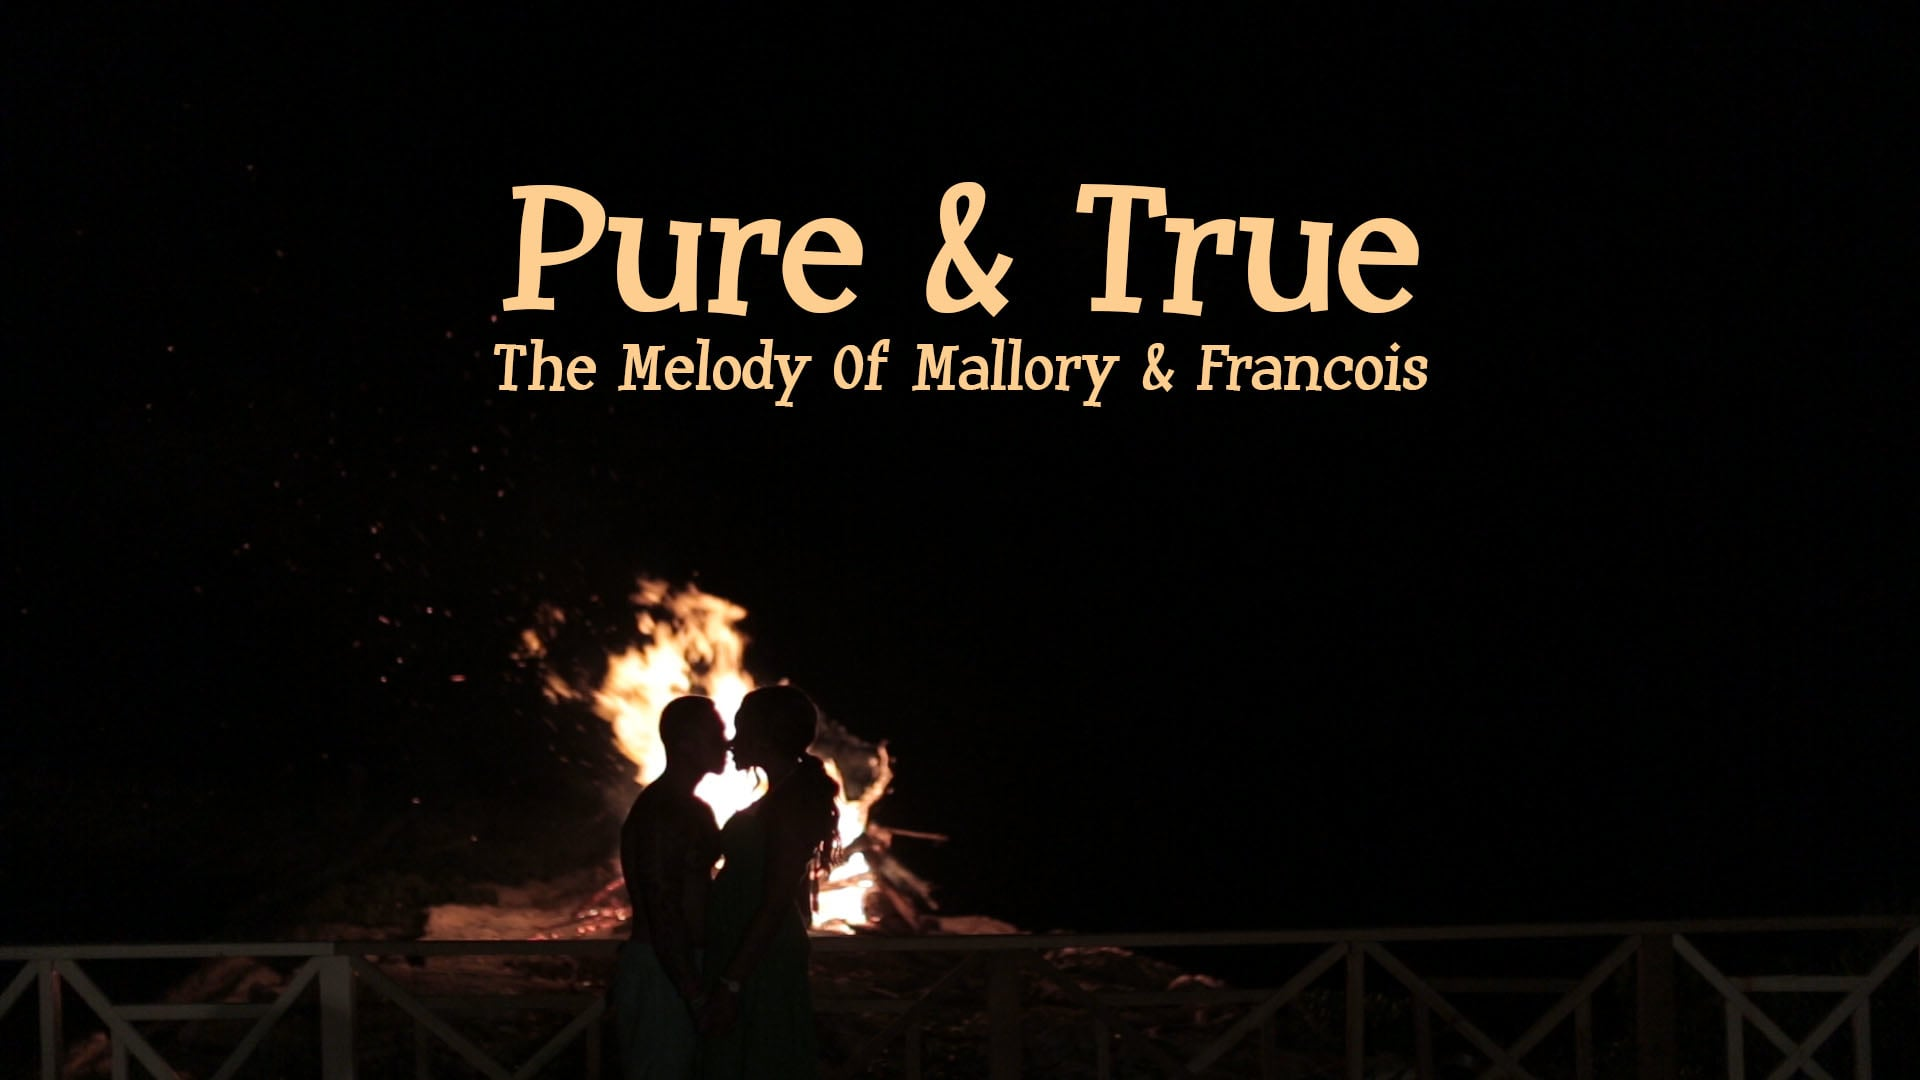 Pure & True - The Melody of Mallory & Francois (Montego Bay, Jamaica) by Marrone Films